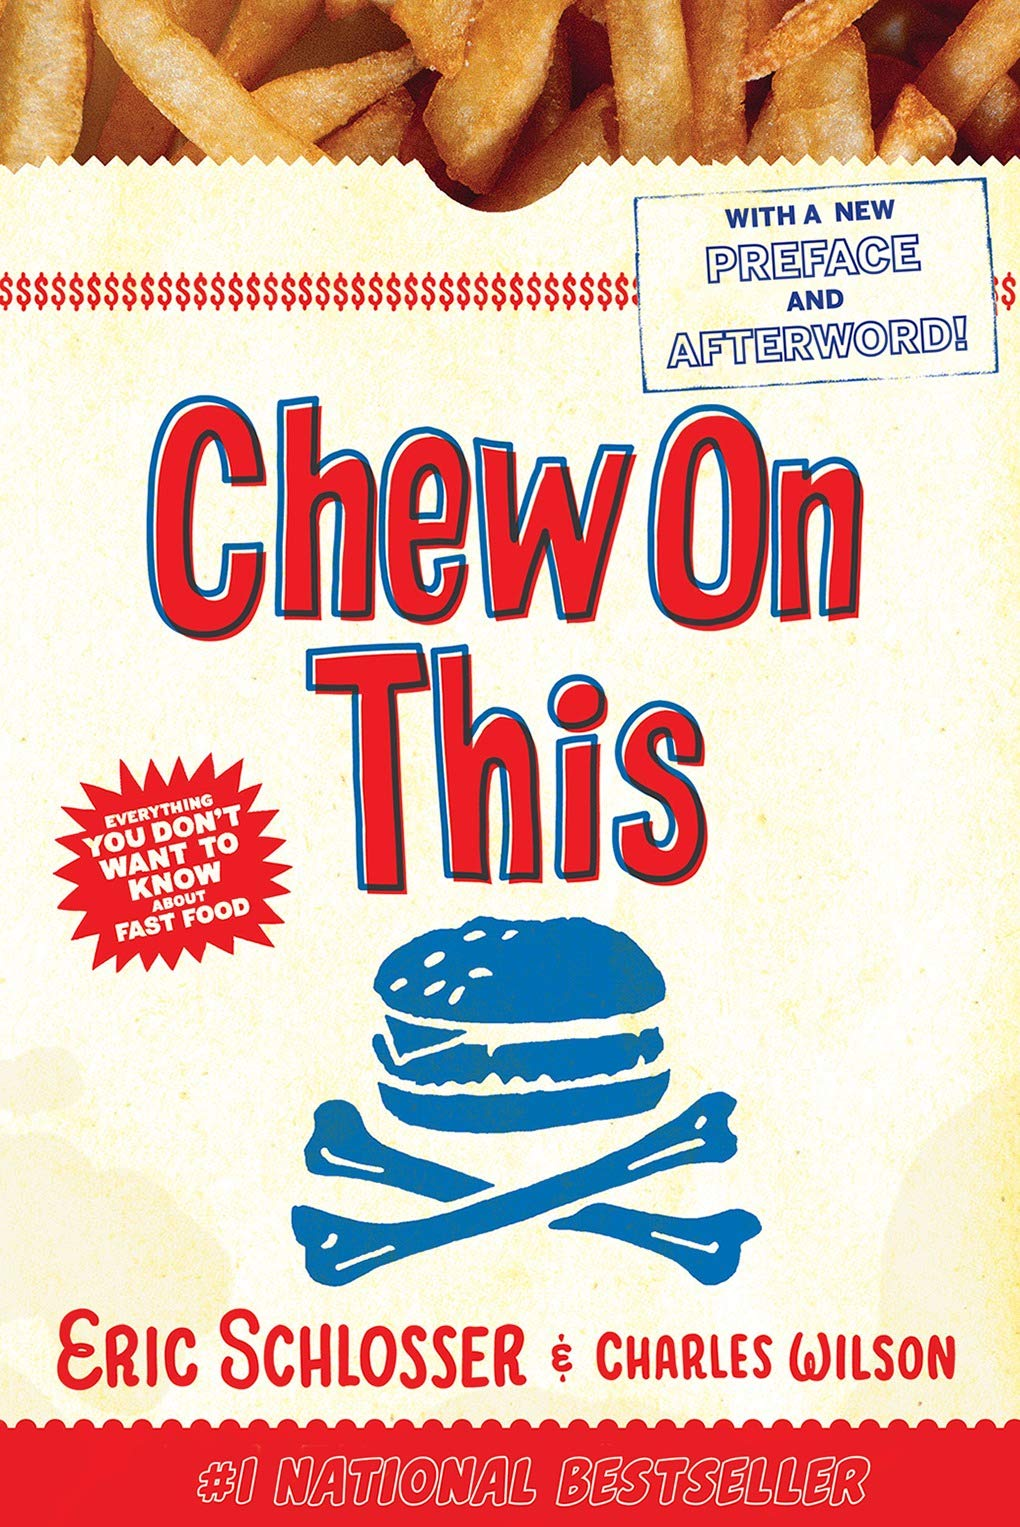 chew on this : Everything you don't want to know about fast food - By Eric SchlosserIn the New York Times bestseller Chew on This, Eric Schlosser and Charles Wilson unwrap the fast-food industry to bring you a behind-the-scenes look at a business that both feeds and feeds off the young. Find out what really goes on at your favorite restaurants—and what lurks between those sesame seed buns.Praised for being accessible, honest, humorous, fascinating, and alarming, Chew On This was also repeatedly referred to as a must-read for kids who regularly eat fast food. Having all the facts about fast food helps young people make healthy decisions about what they eat. Chew On This shows them that they can change the world by changing what they eat.Chew on This also includes action steps, a discussion guide, and a new afterword by the authors.